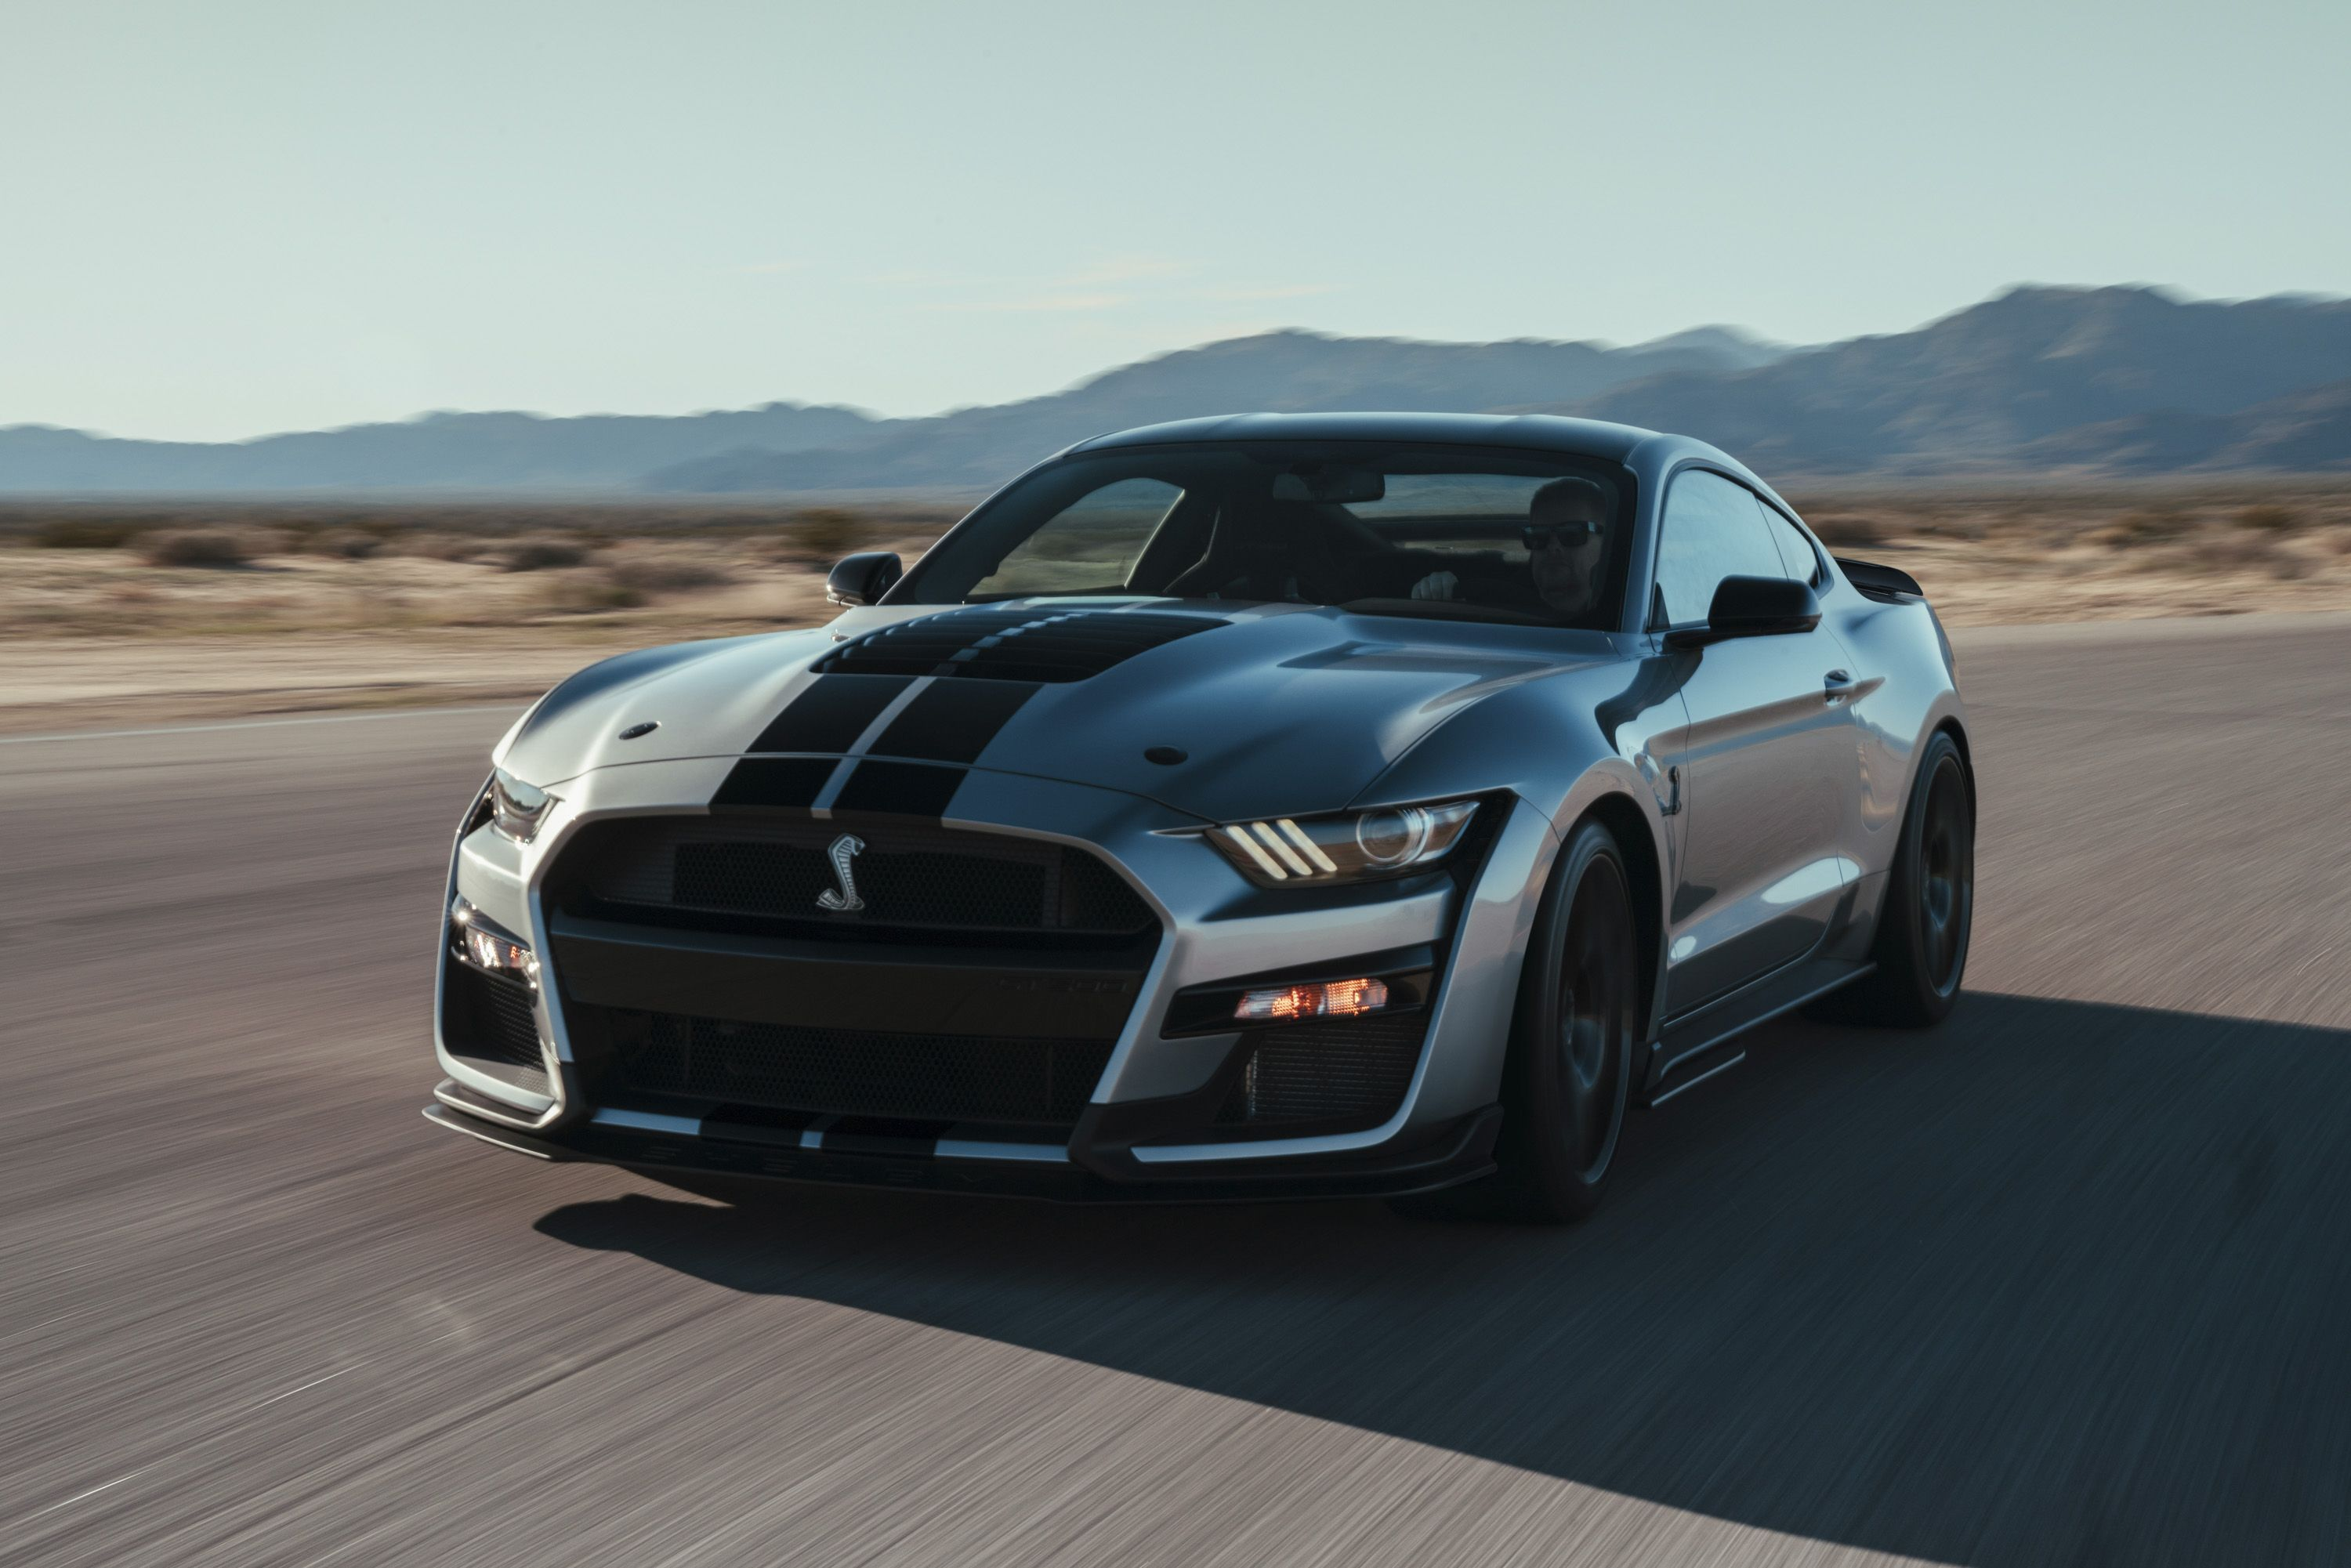 The Best Ford Mustangs Of All Time Top Speed In 2020 Ford Mustang Shelby Gt500 Shelby Gt500 Mustang Gt500